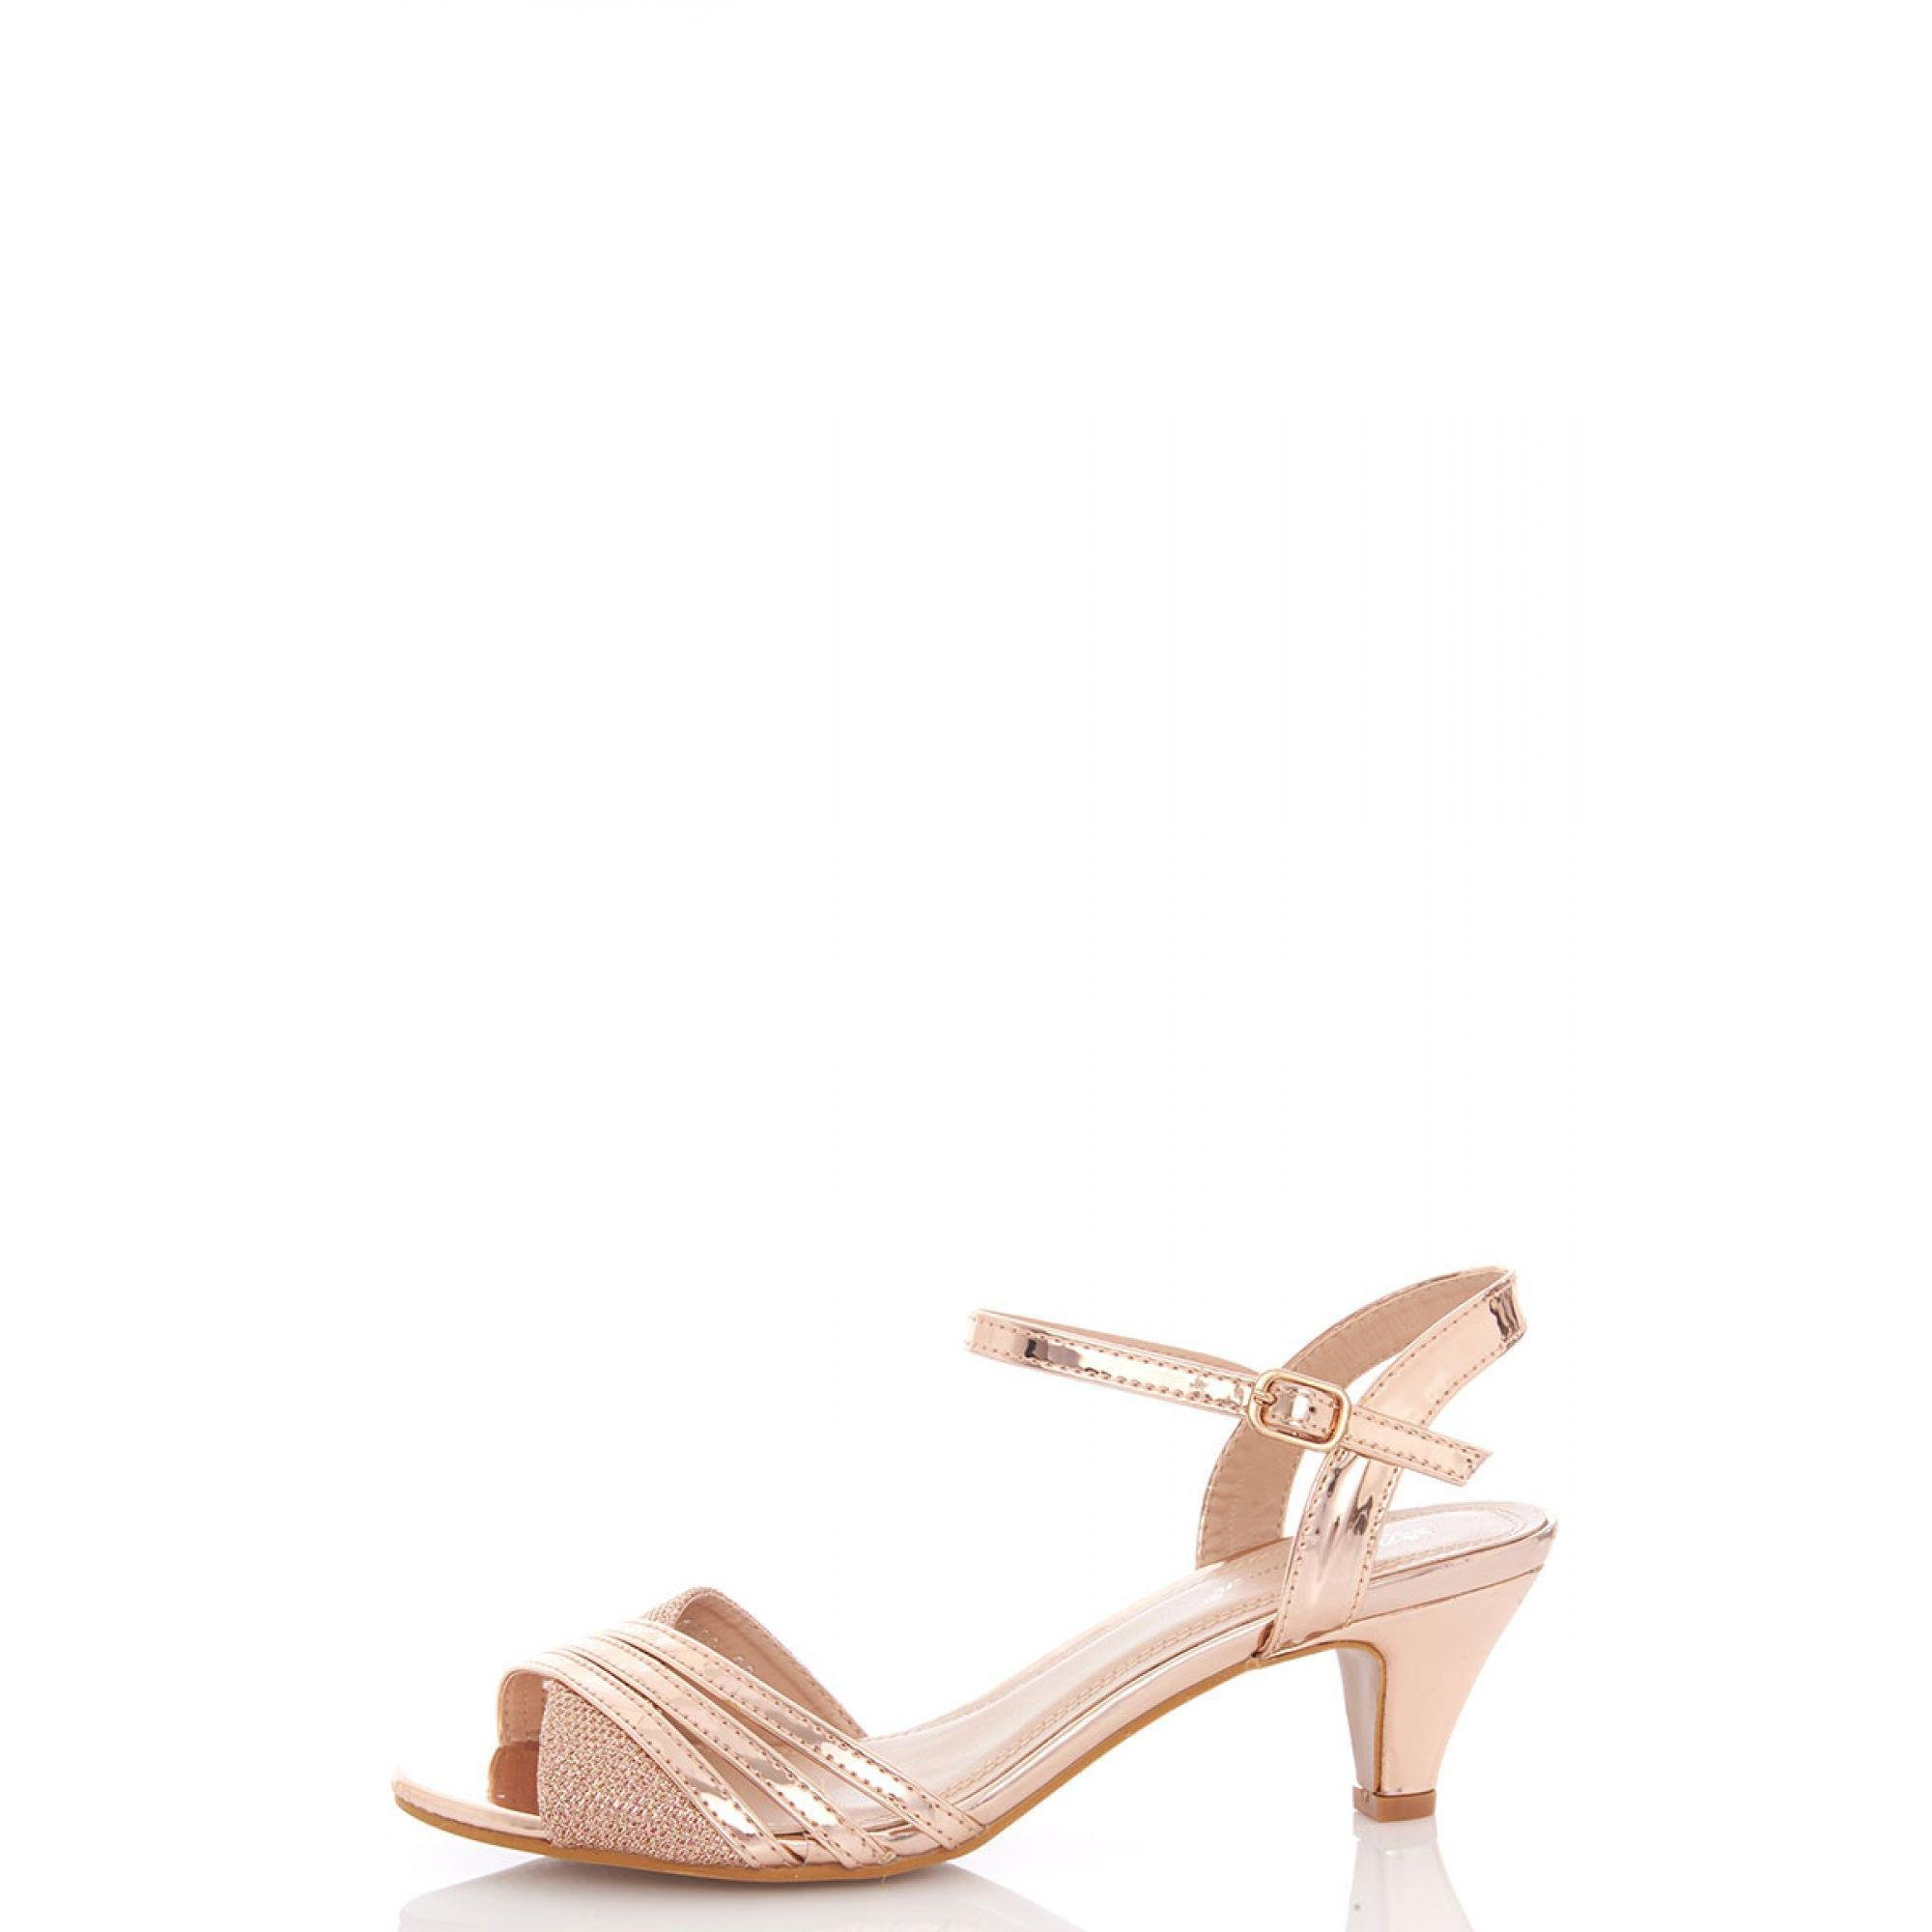 6a4cdb3761c Quiz Rose Gold Metallic Strap Low Heel Sandals in Metallic - Lyst